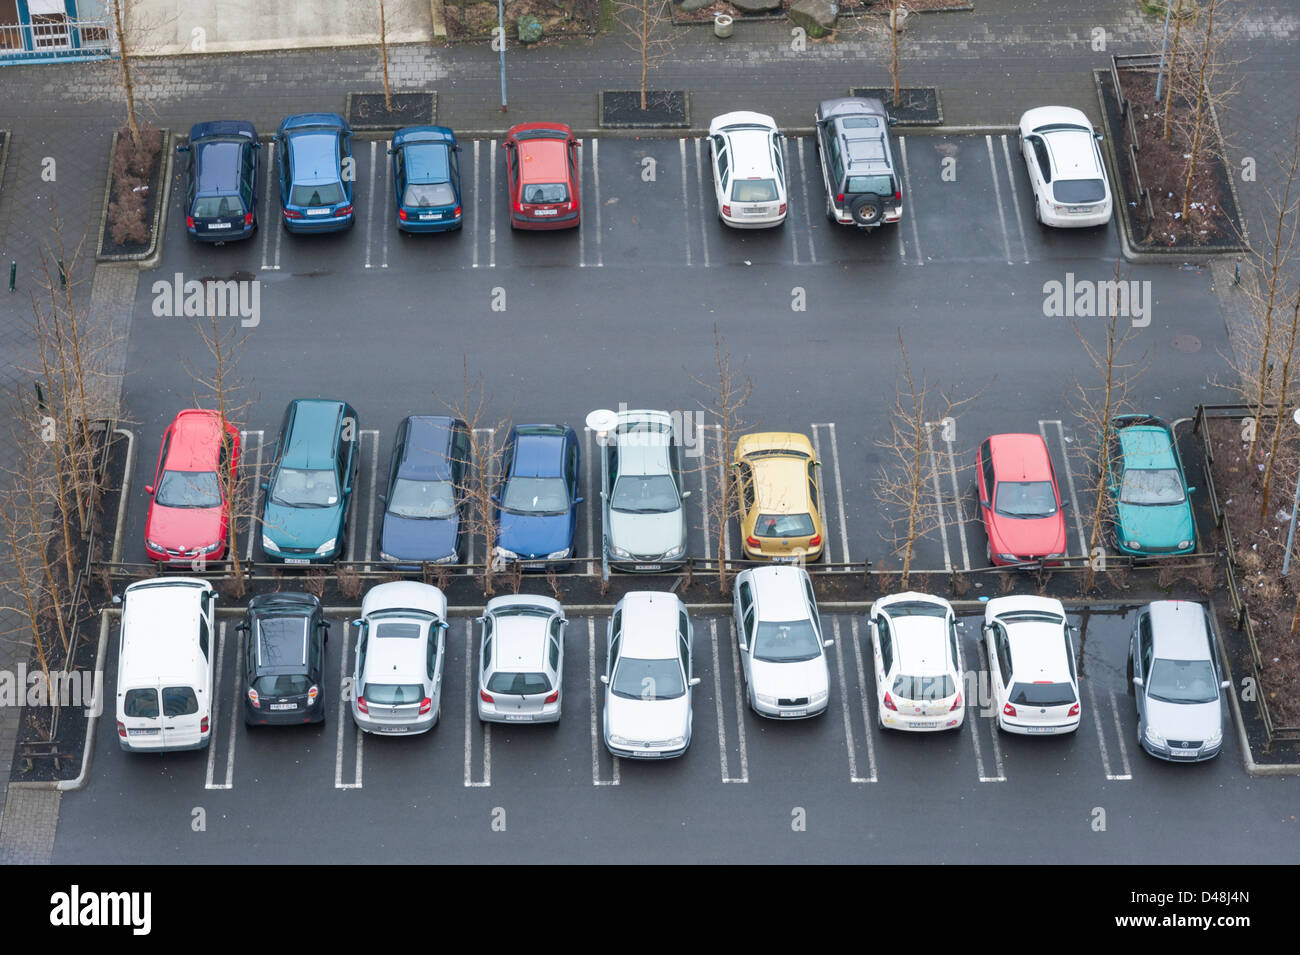 Aerial view of cars parked in a car park Reykjavik Iceland - Stock Image